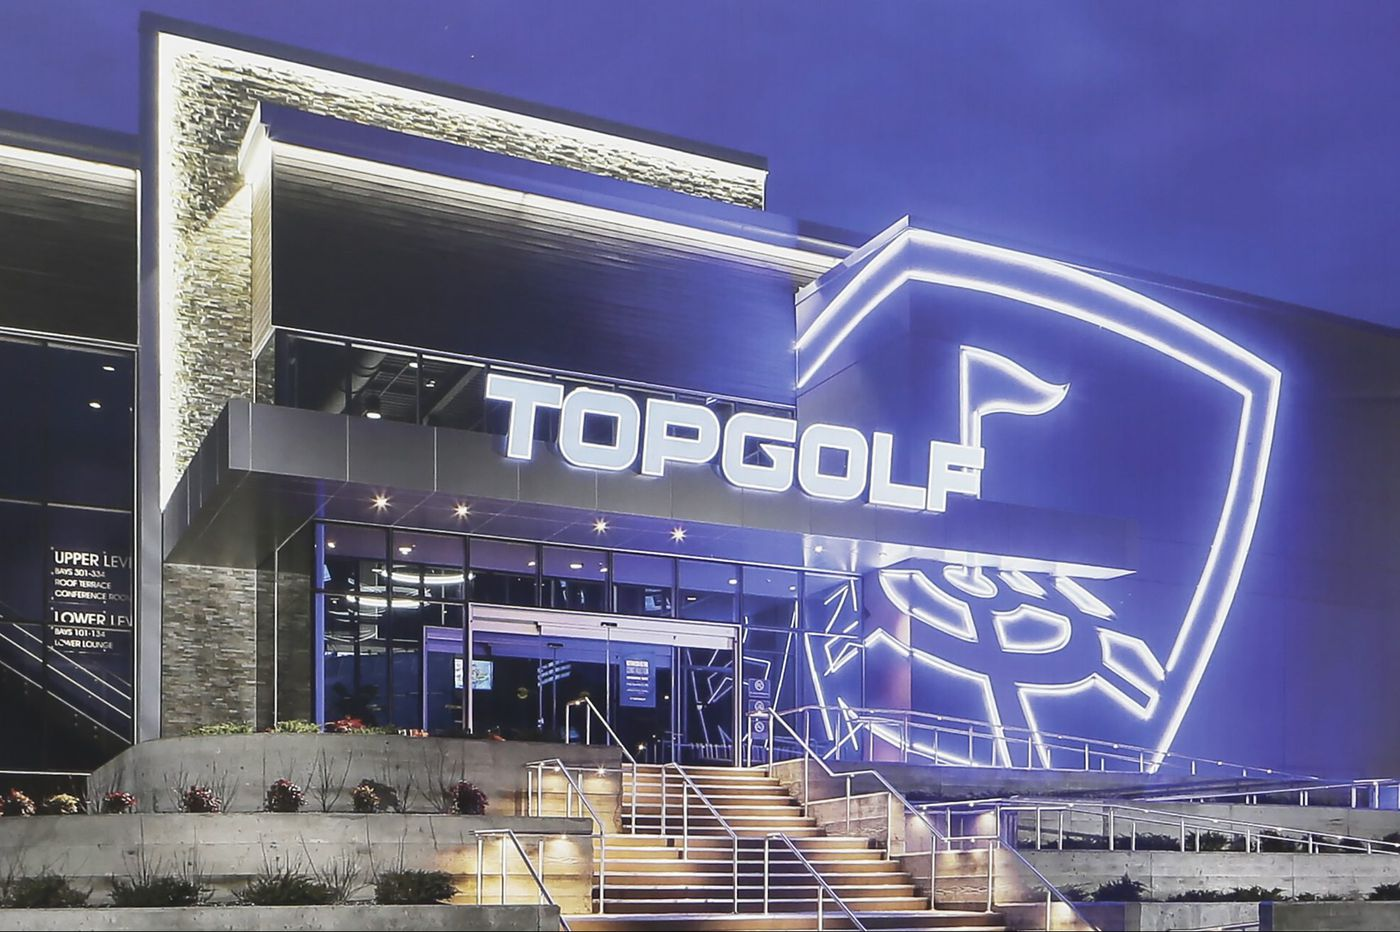 Top-shelf liquor, trendy food, a rooftop terrace with a firepit, music – oh, and golf. Topgolf is coming soon to Mount Laurel